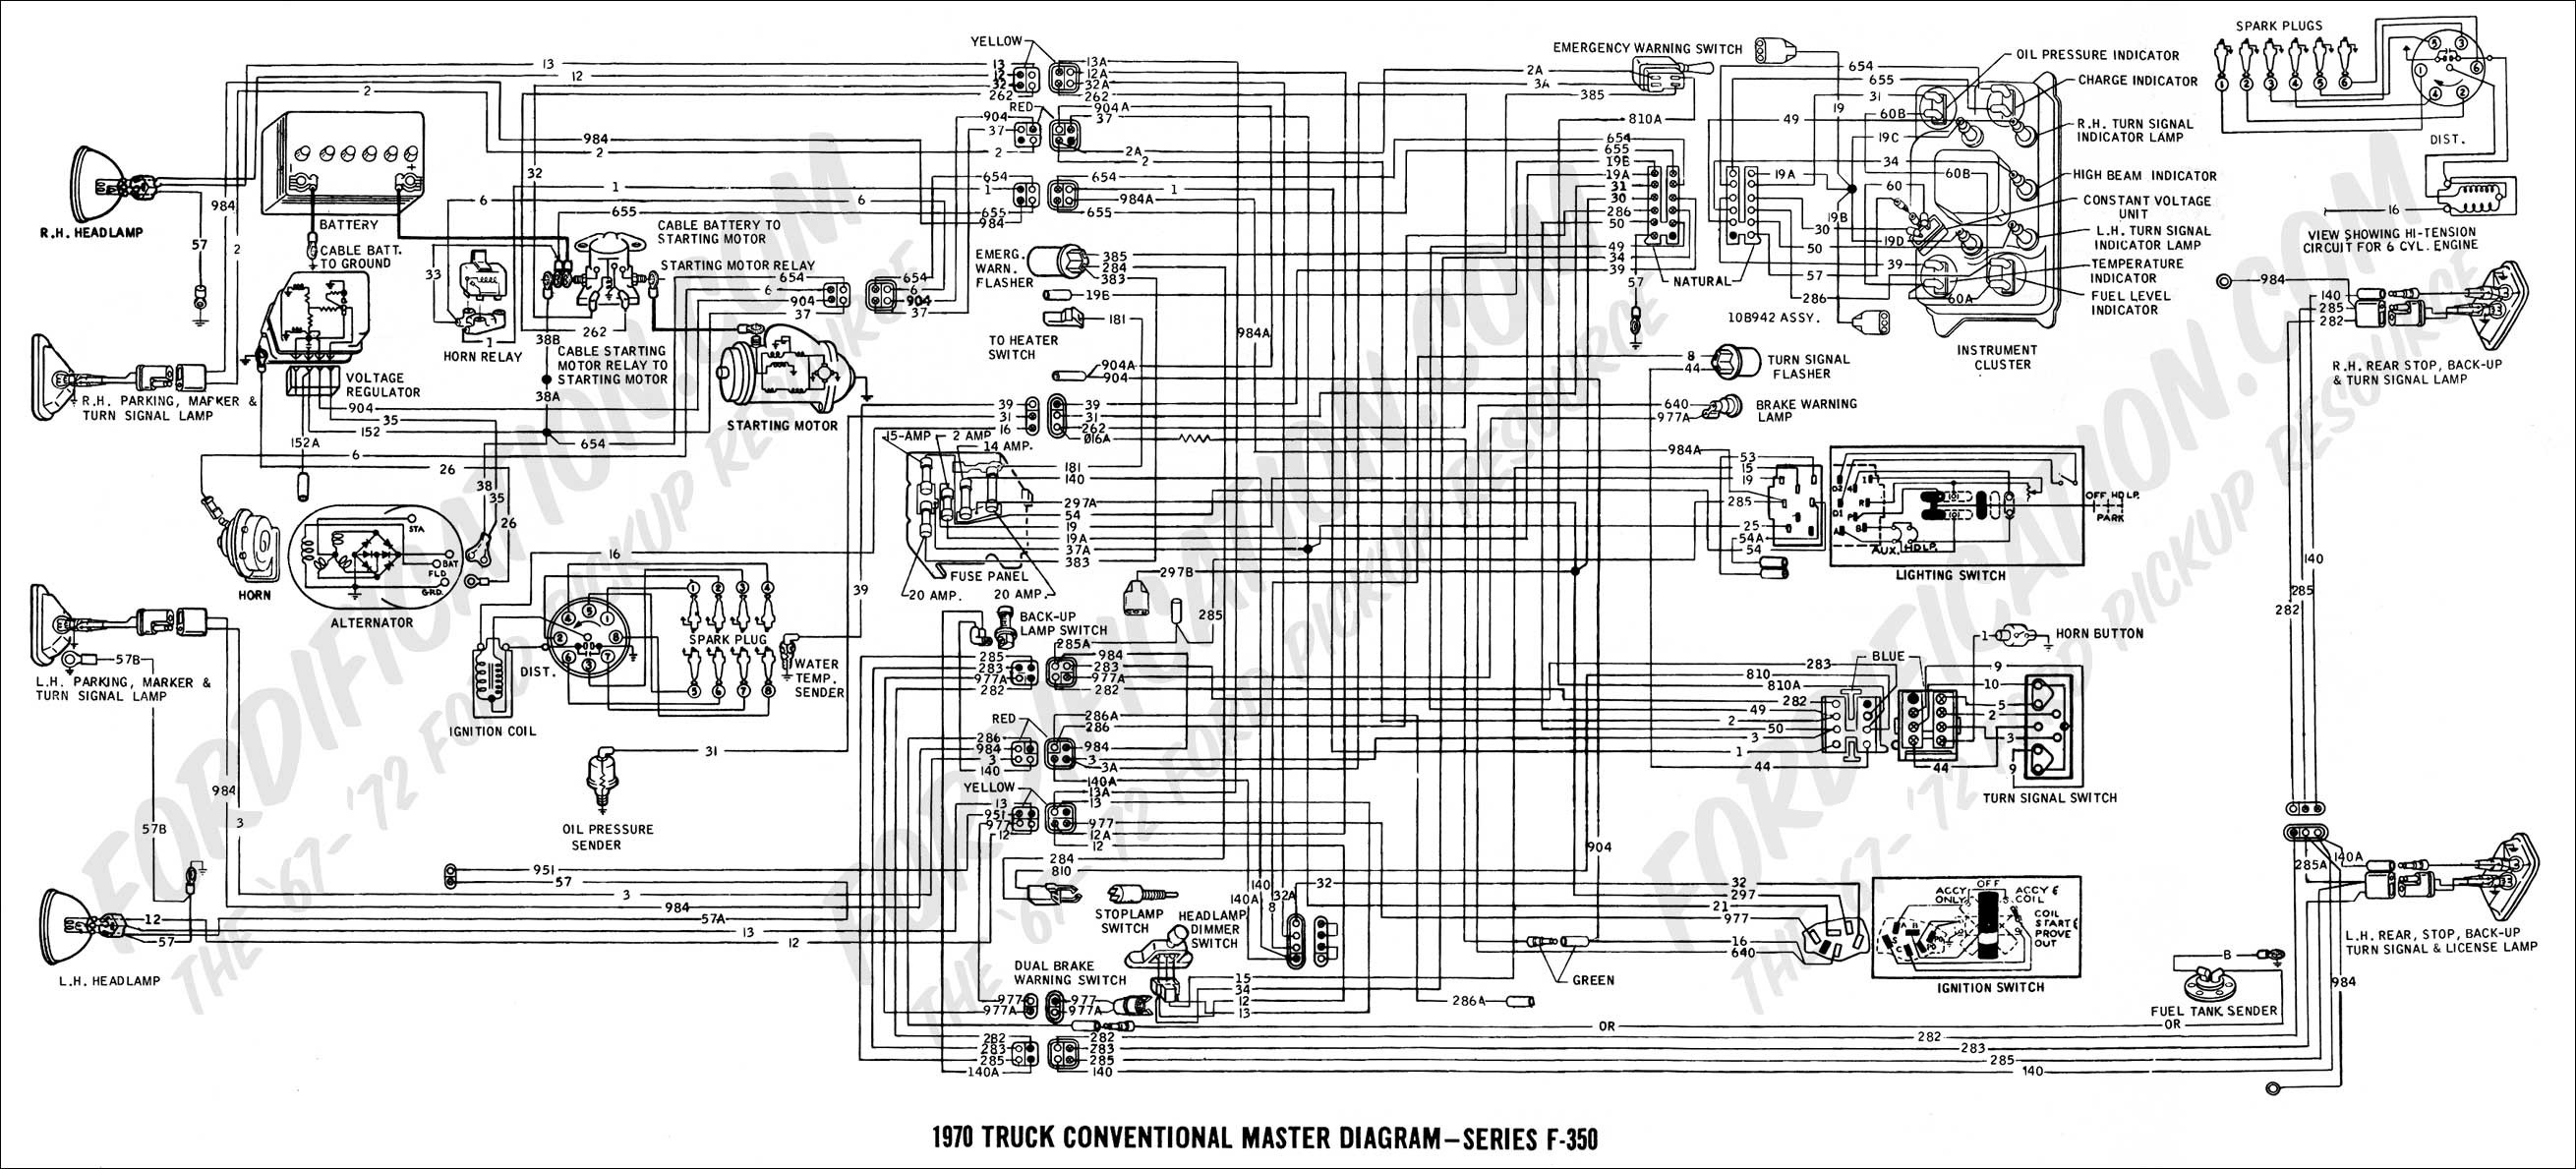 1990 ford f150 starter solenoid wiring diagram inspirational rh mainetreasurechest com 1990 ford f150 alternator wiring diagram 1990 ford f150 alternator wiring diagram